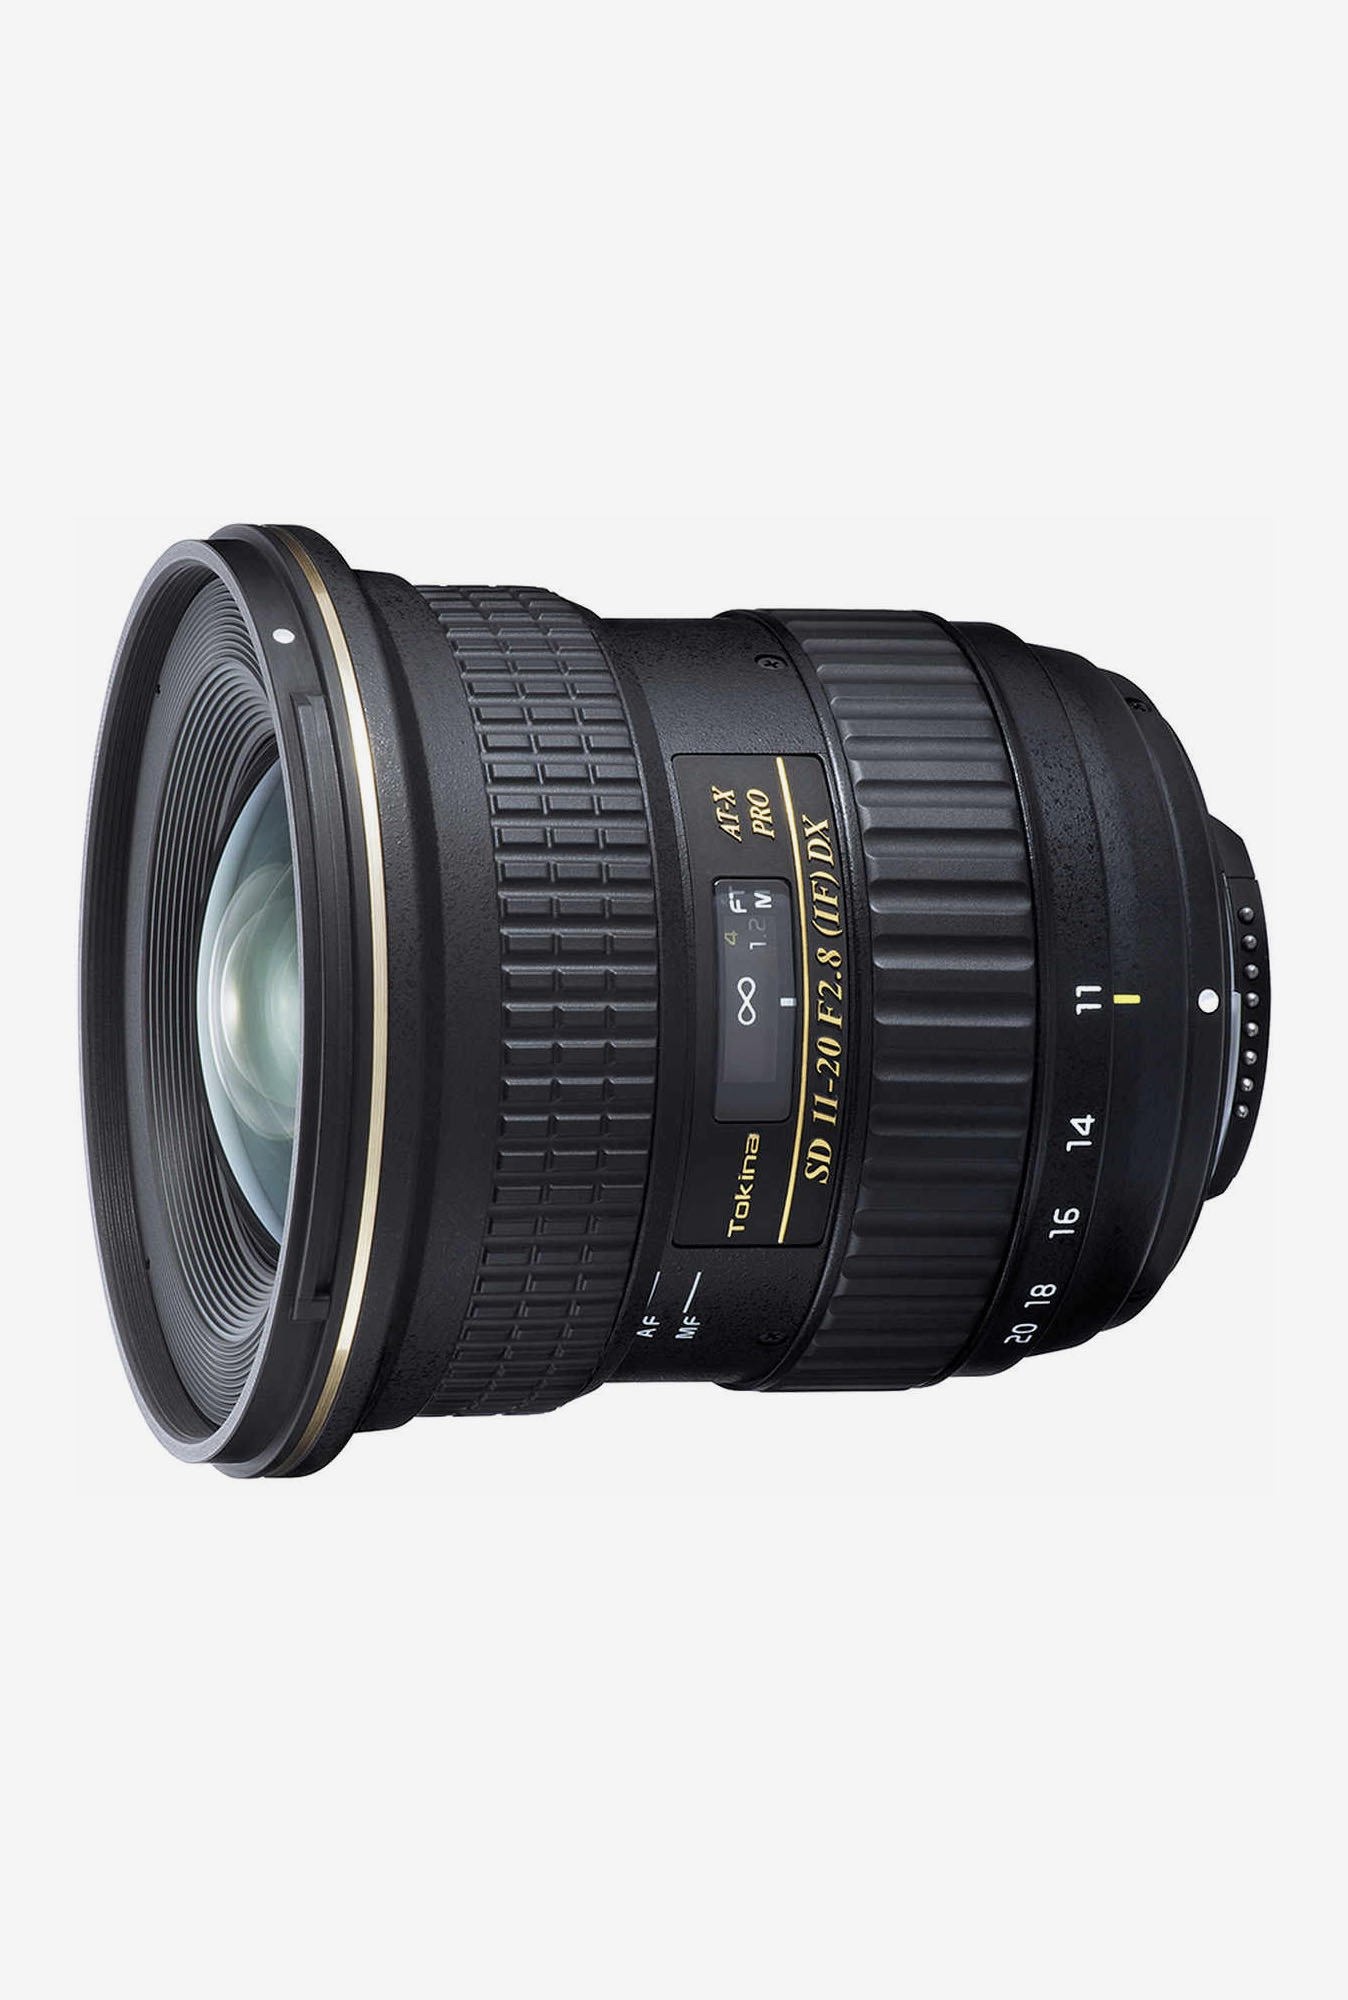 Tokina At-X 11-20mm F/2.8 Pro Dx Lens For Nikon Digital SLR